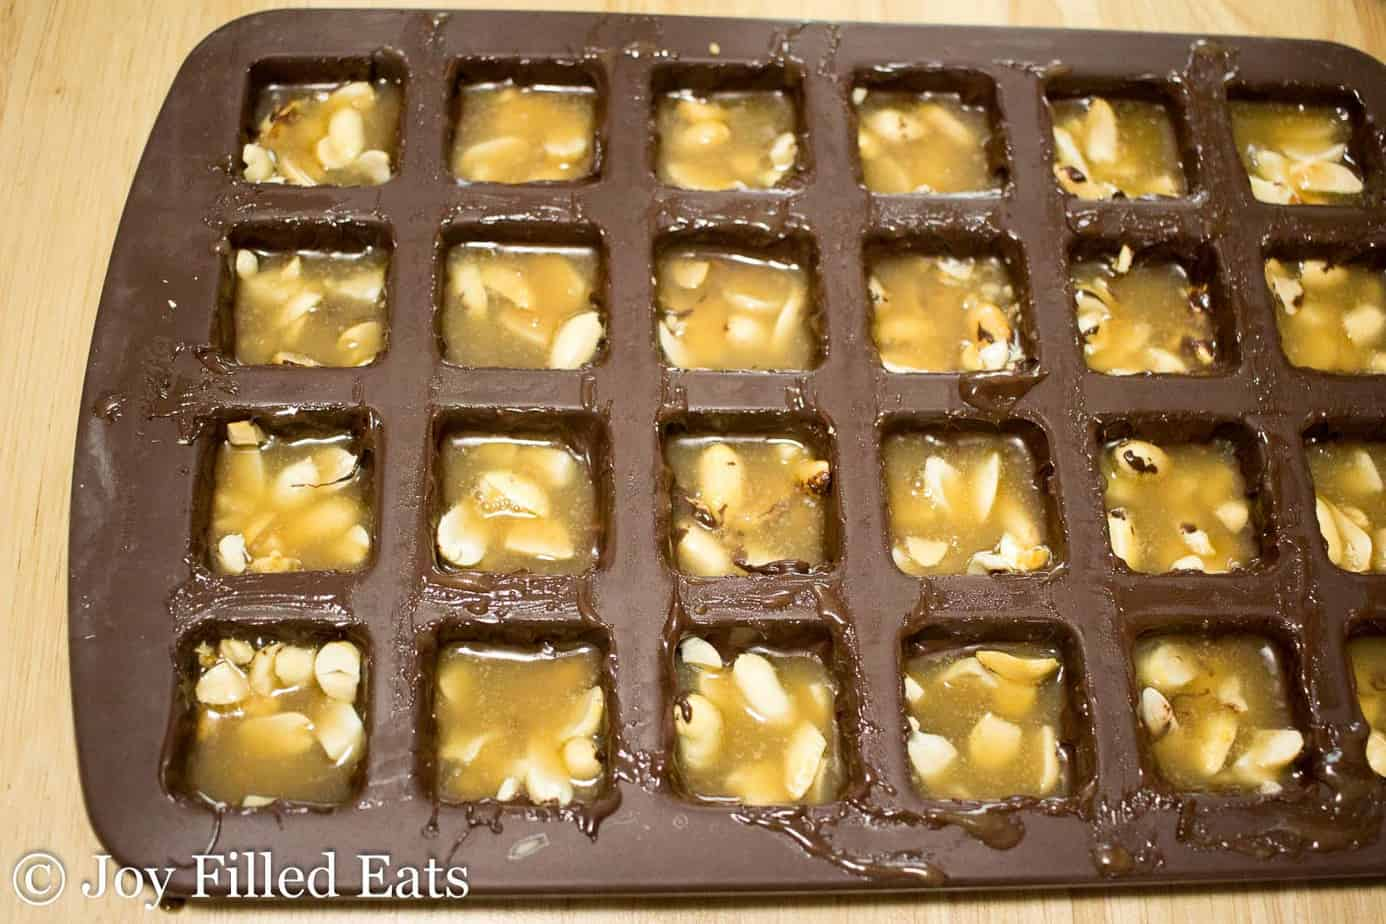 caramel poured into molds on tray for mini snickers ice cream bars